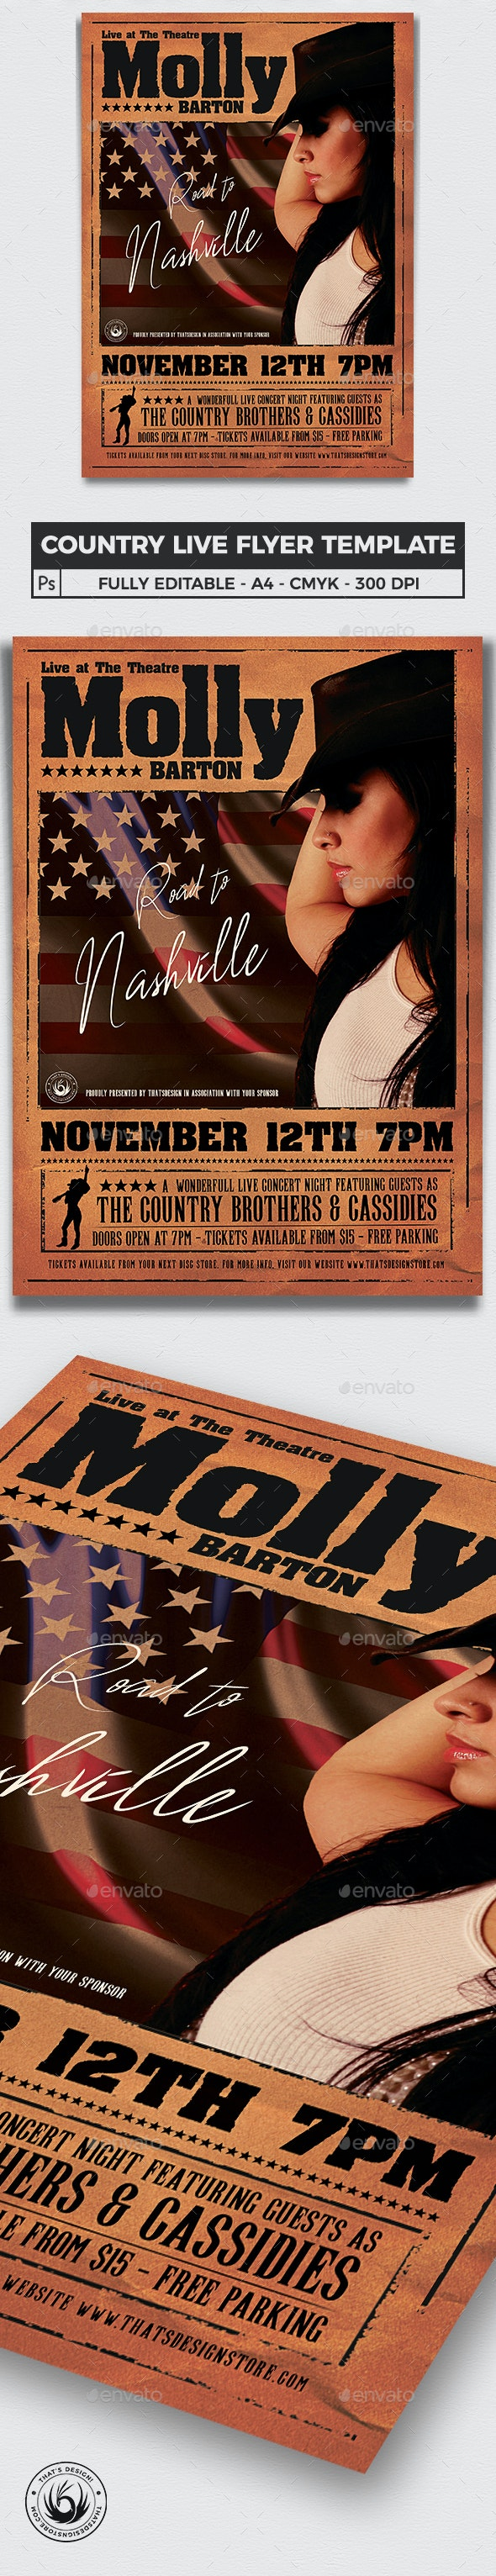 Country Live Flyer Template V2 - Concerts Events